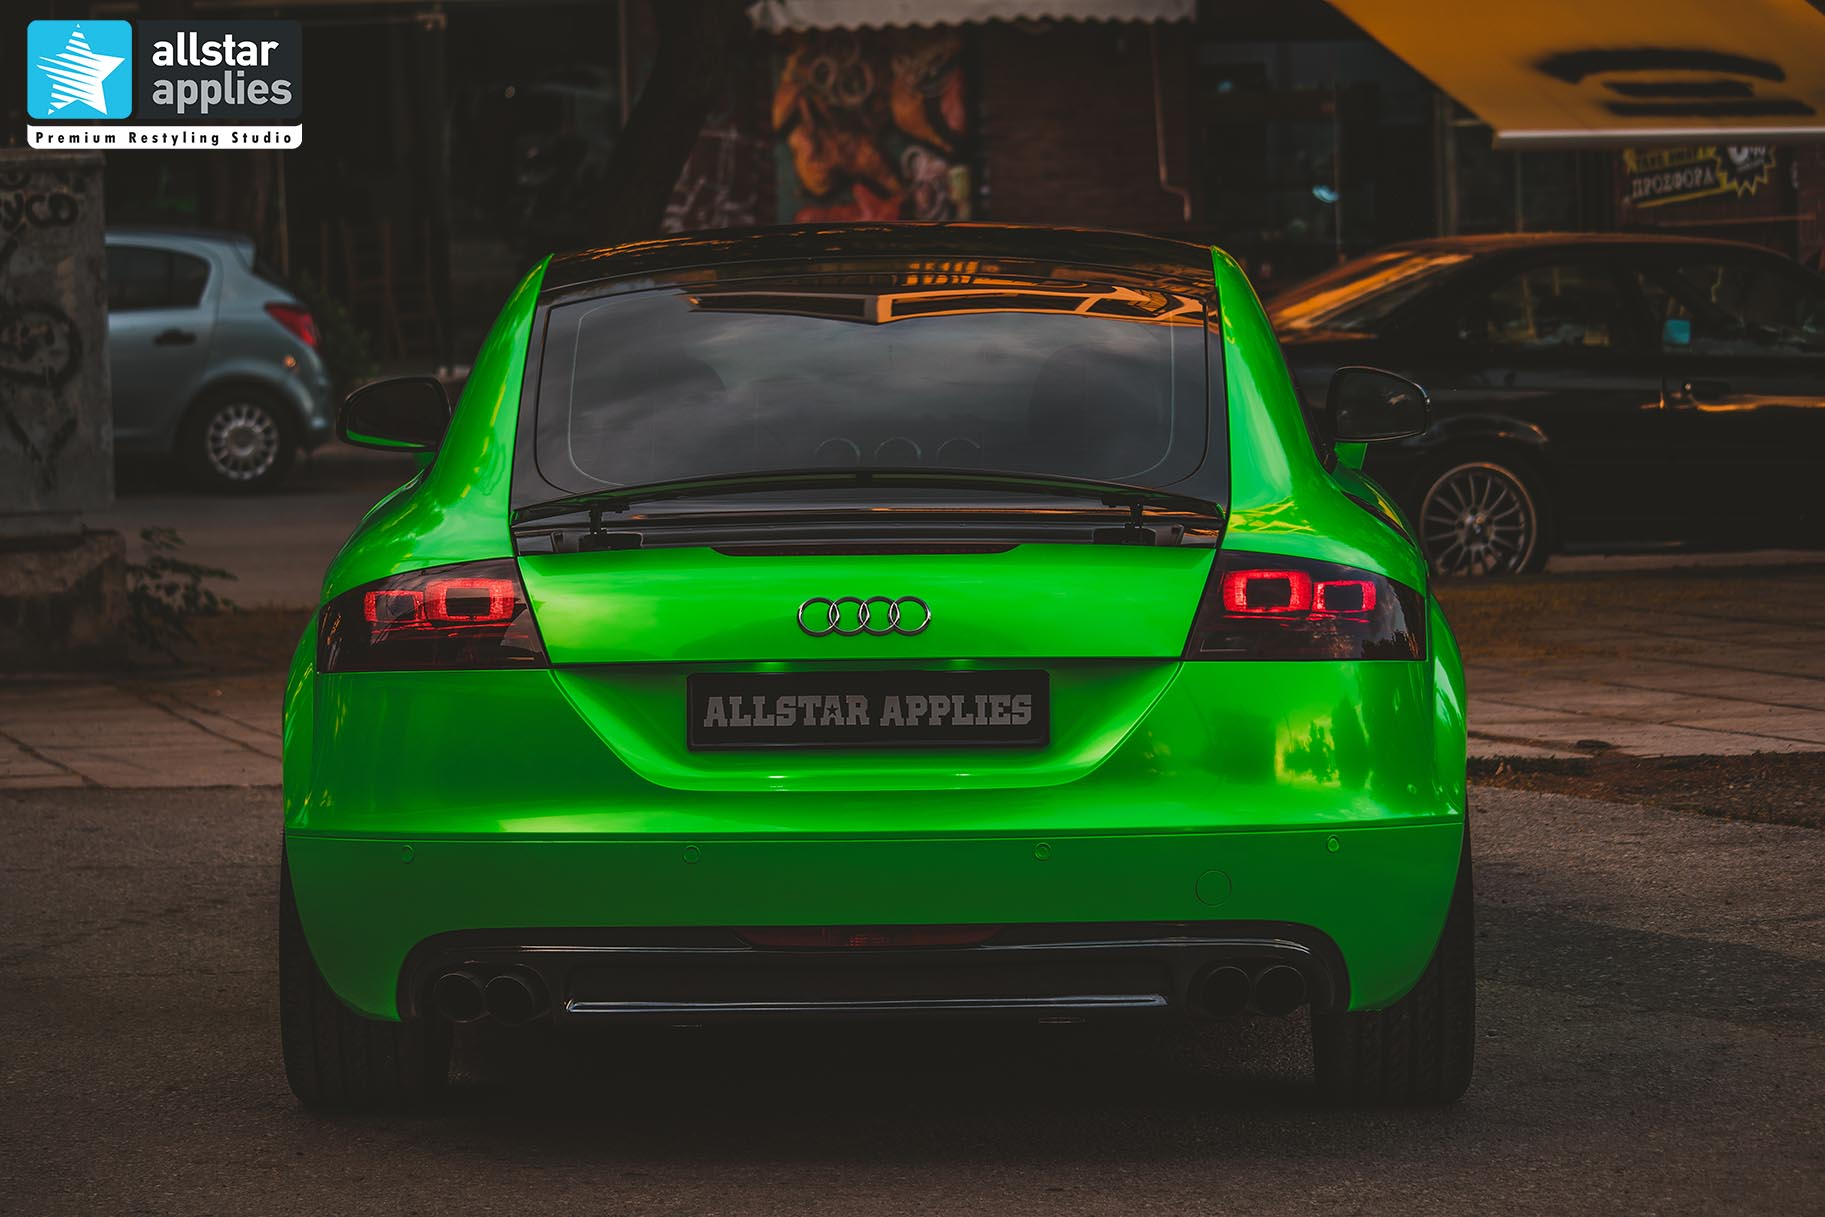 GYMKHANA GREEN AUDI TT ALLSTAR APPLIES 7